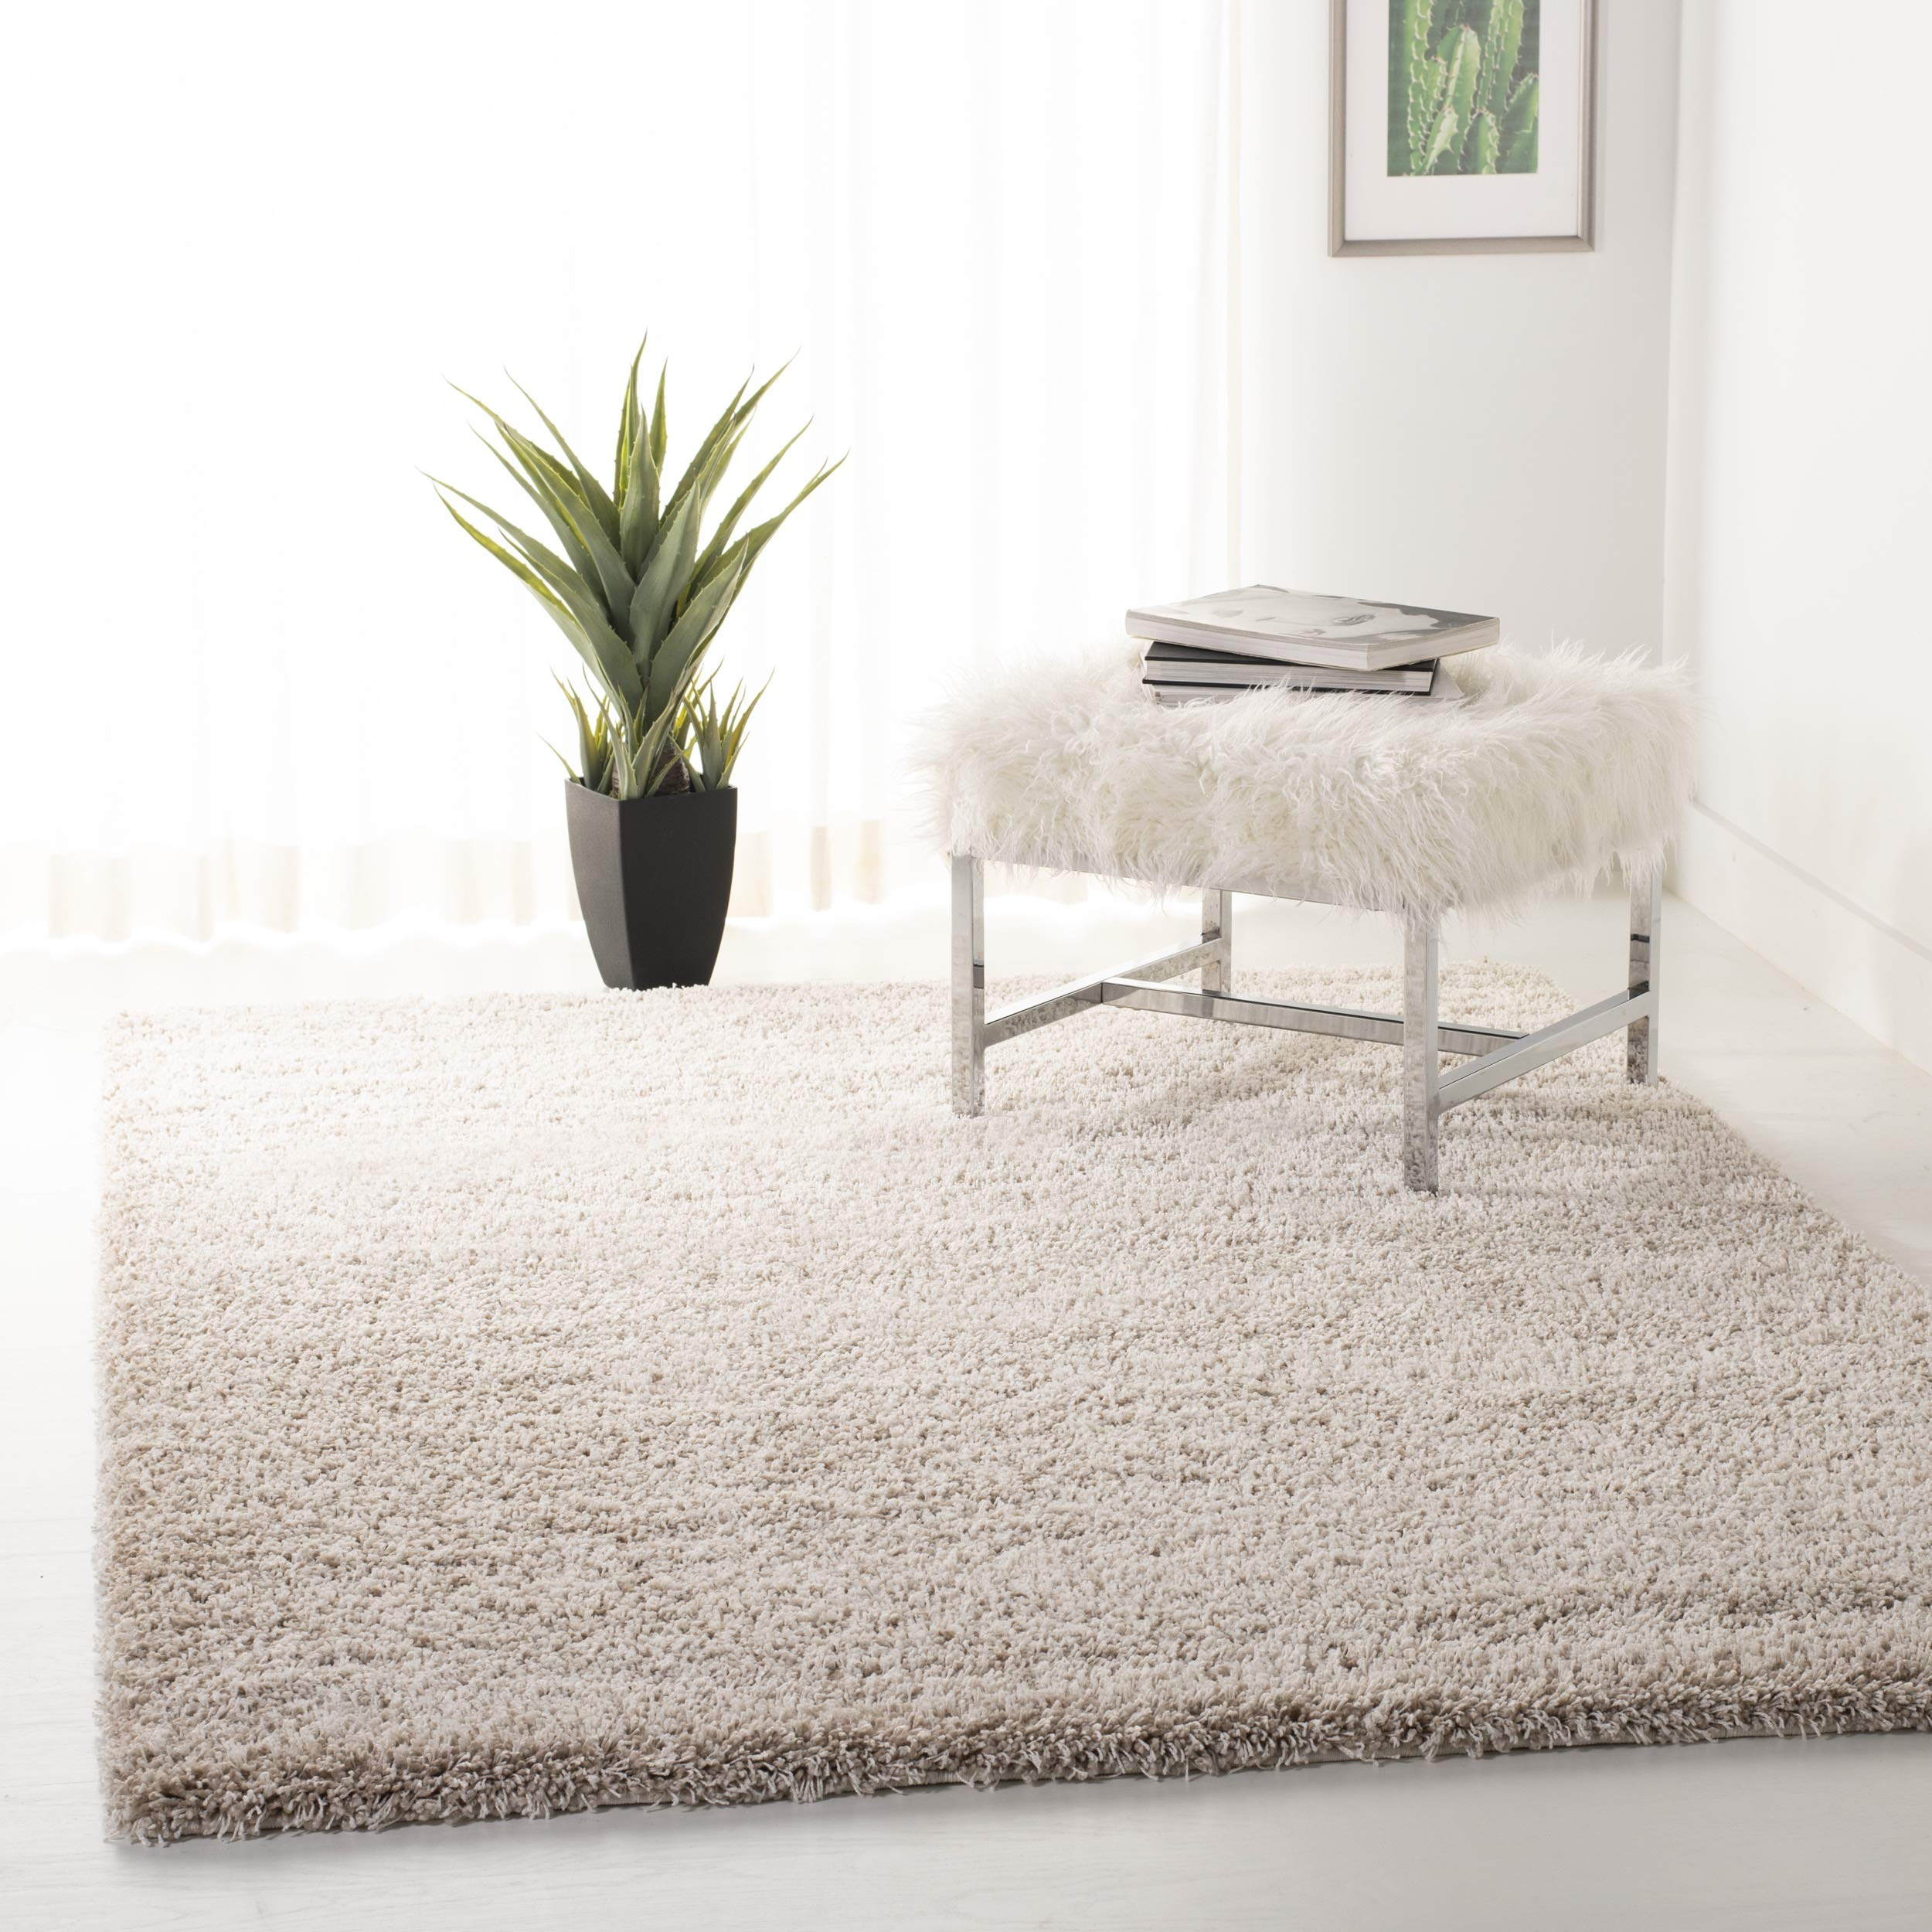 Safavieh California Premium Shag Collection SG151-1313 Area Rug, 8' x 10', Beige product image